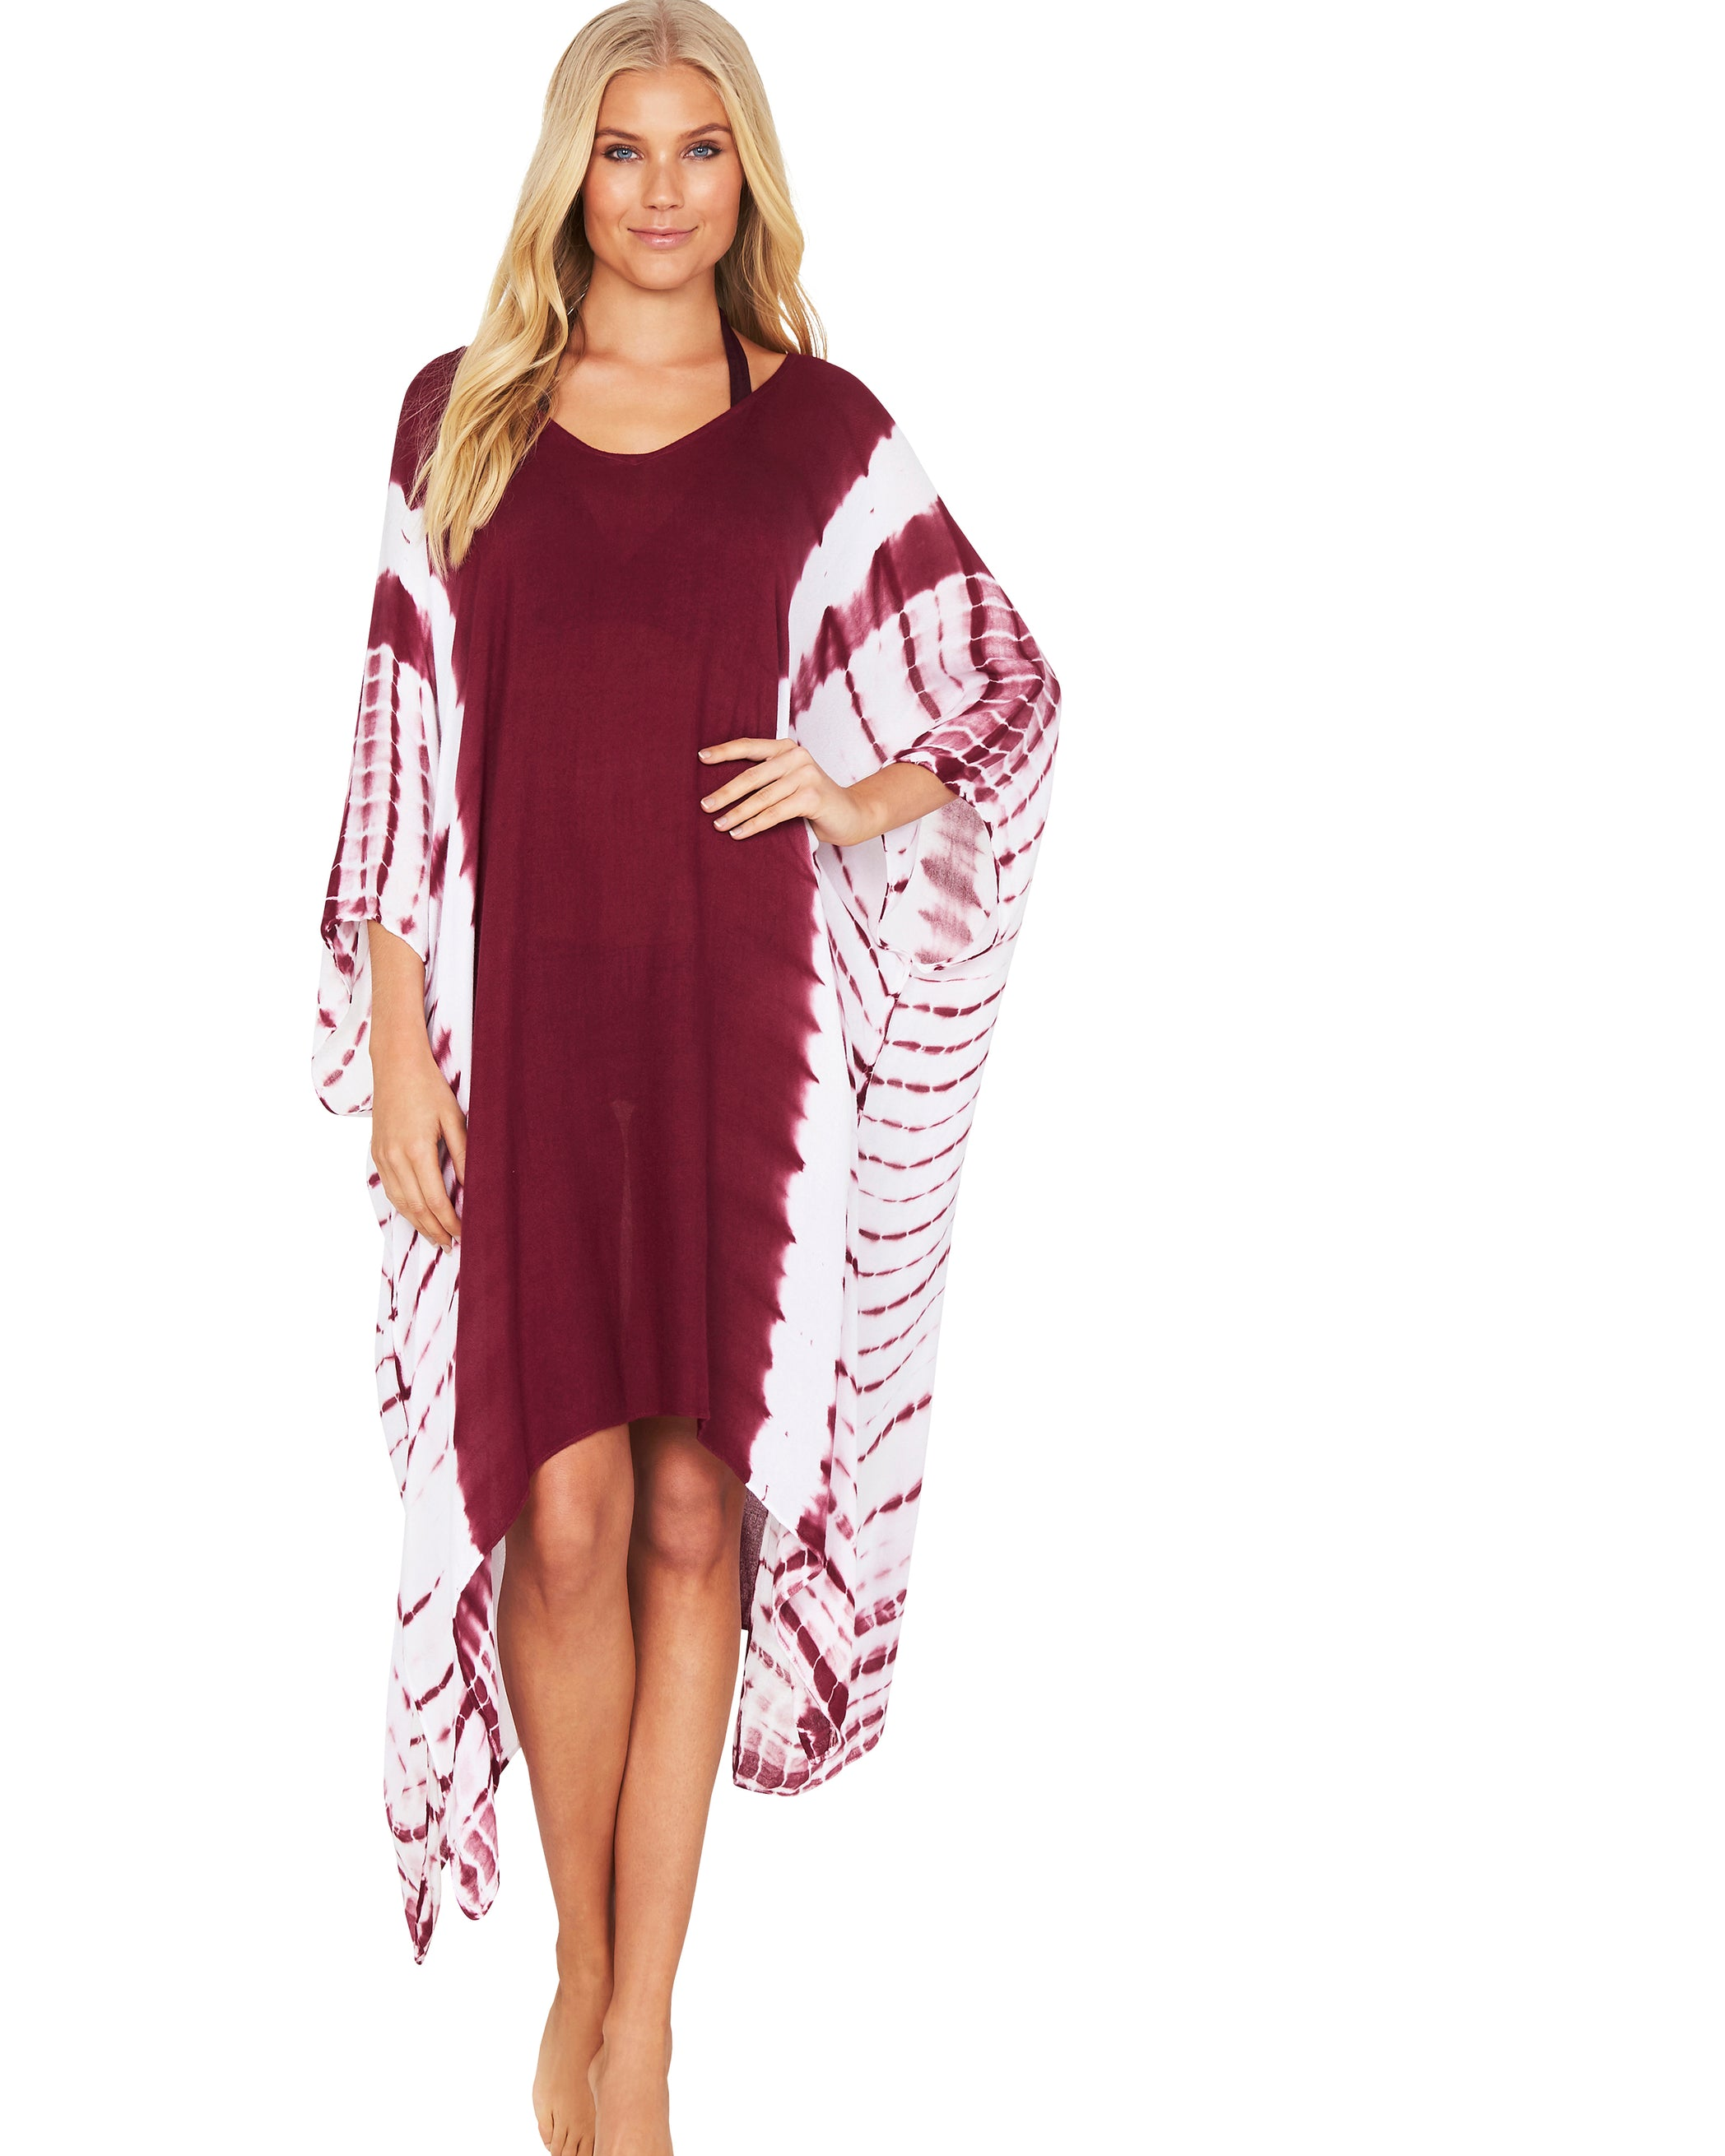 RESORTWEAR MOONDANCER KAFTAN